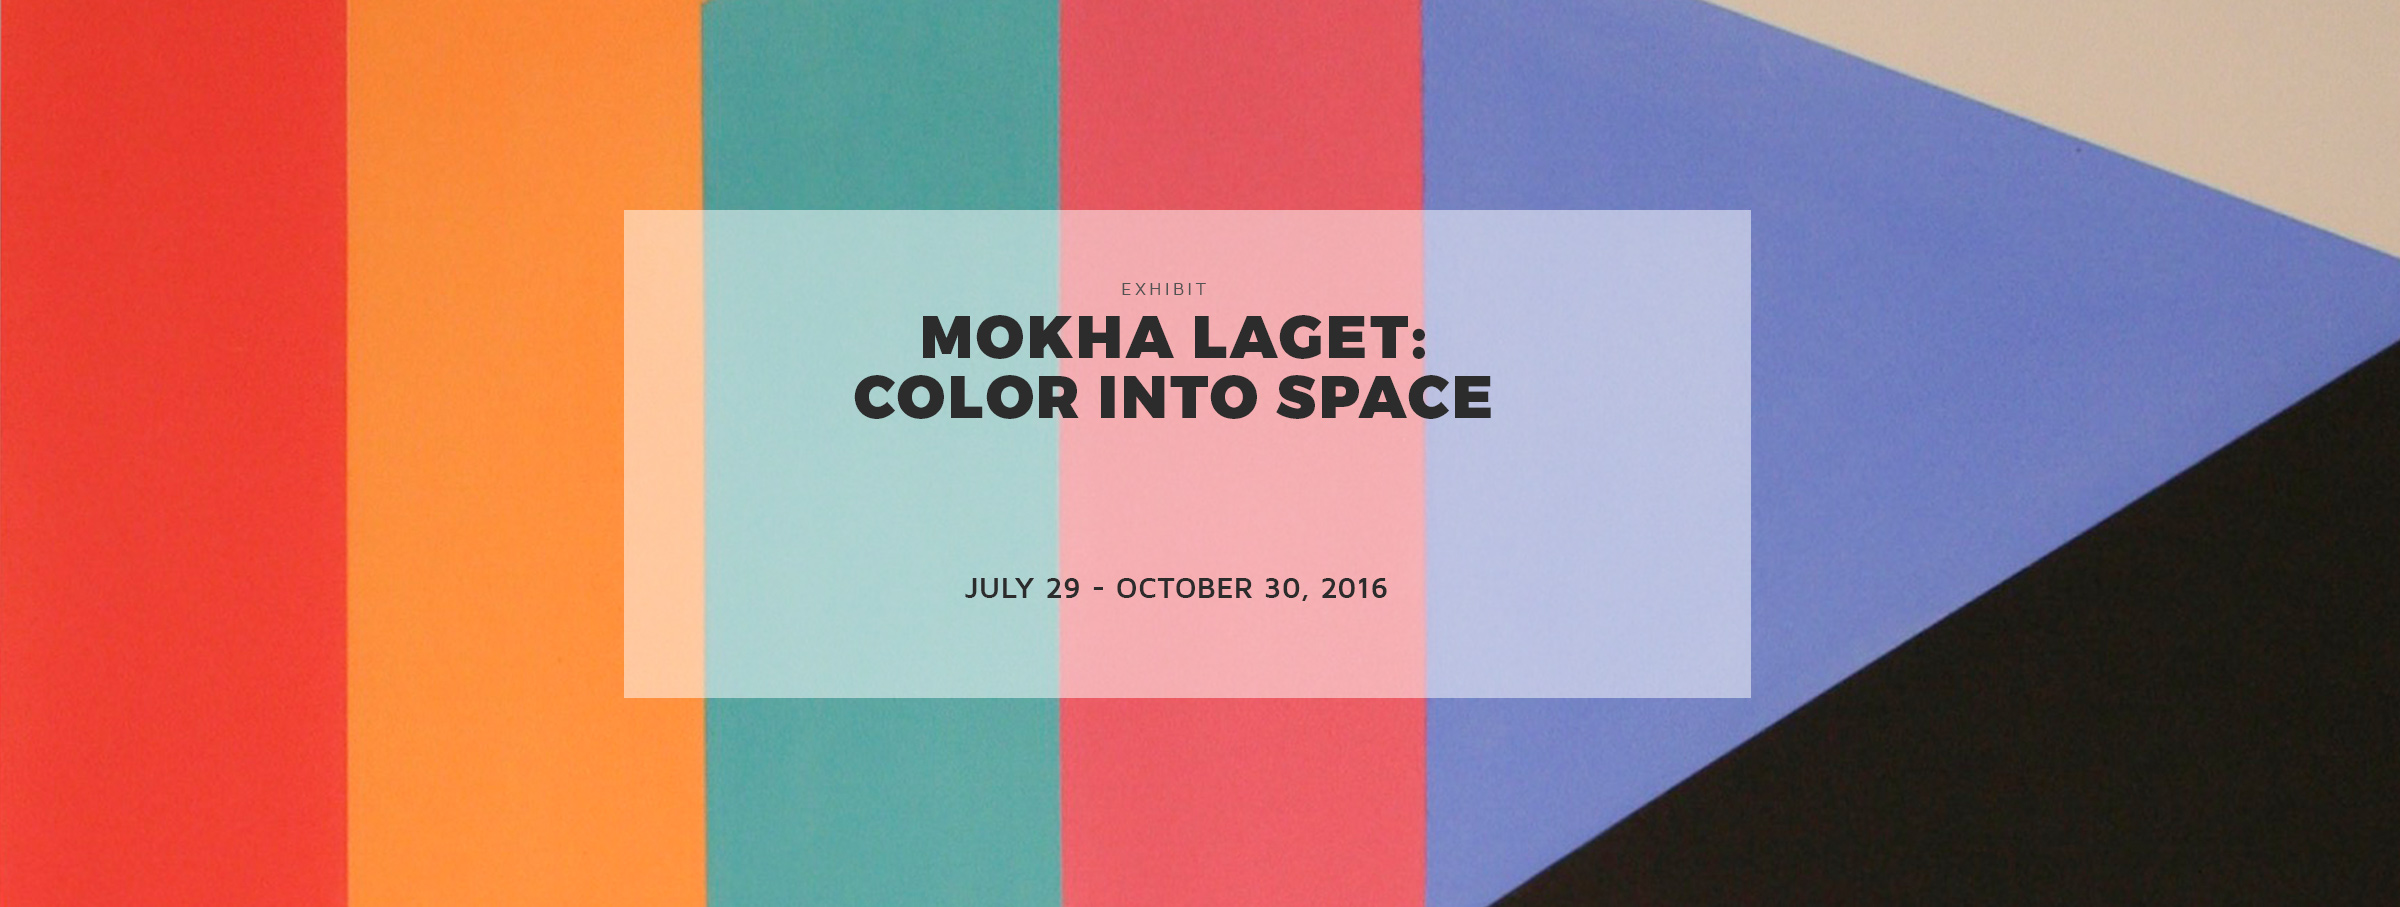 Geometric Art Exhibits in Dallas: Mokha Laget at the Museum of Geometric and MADI Art